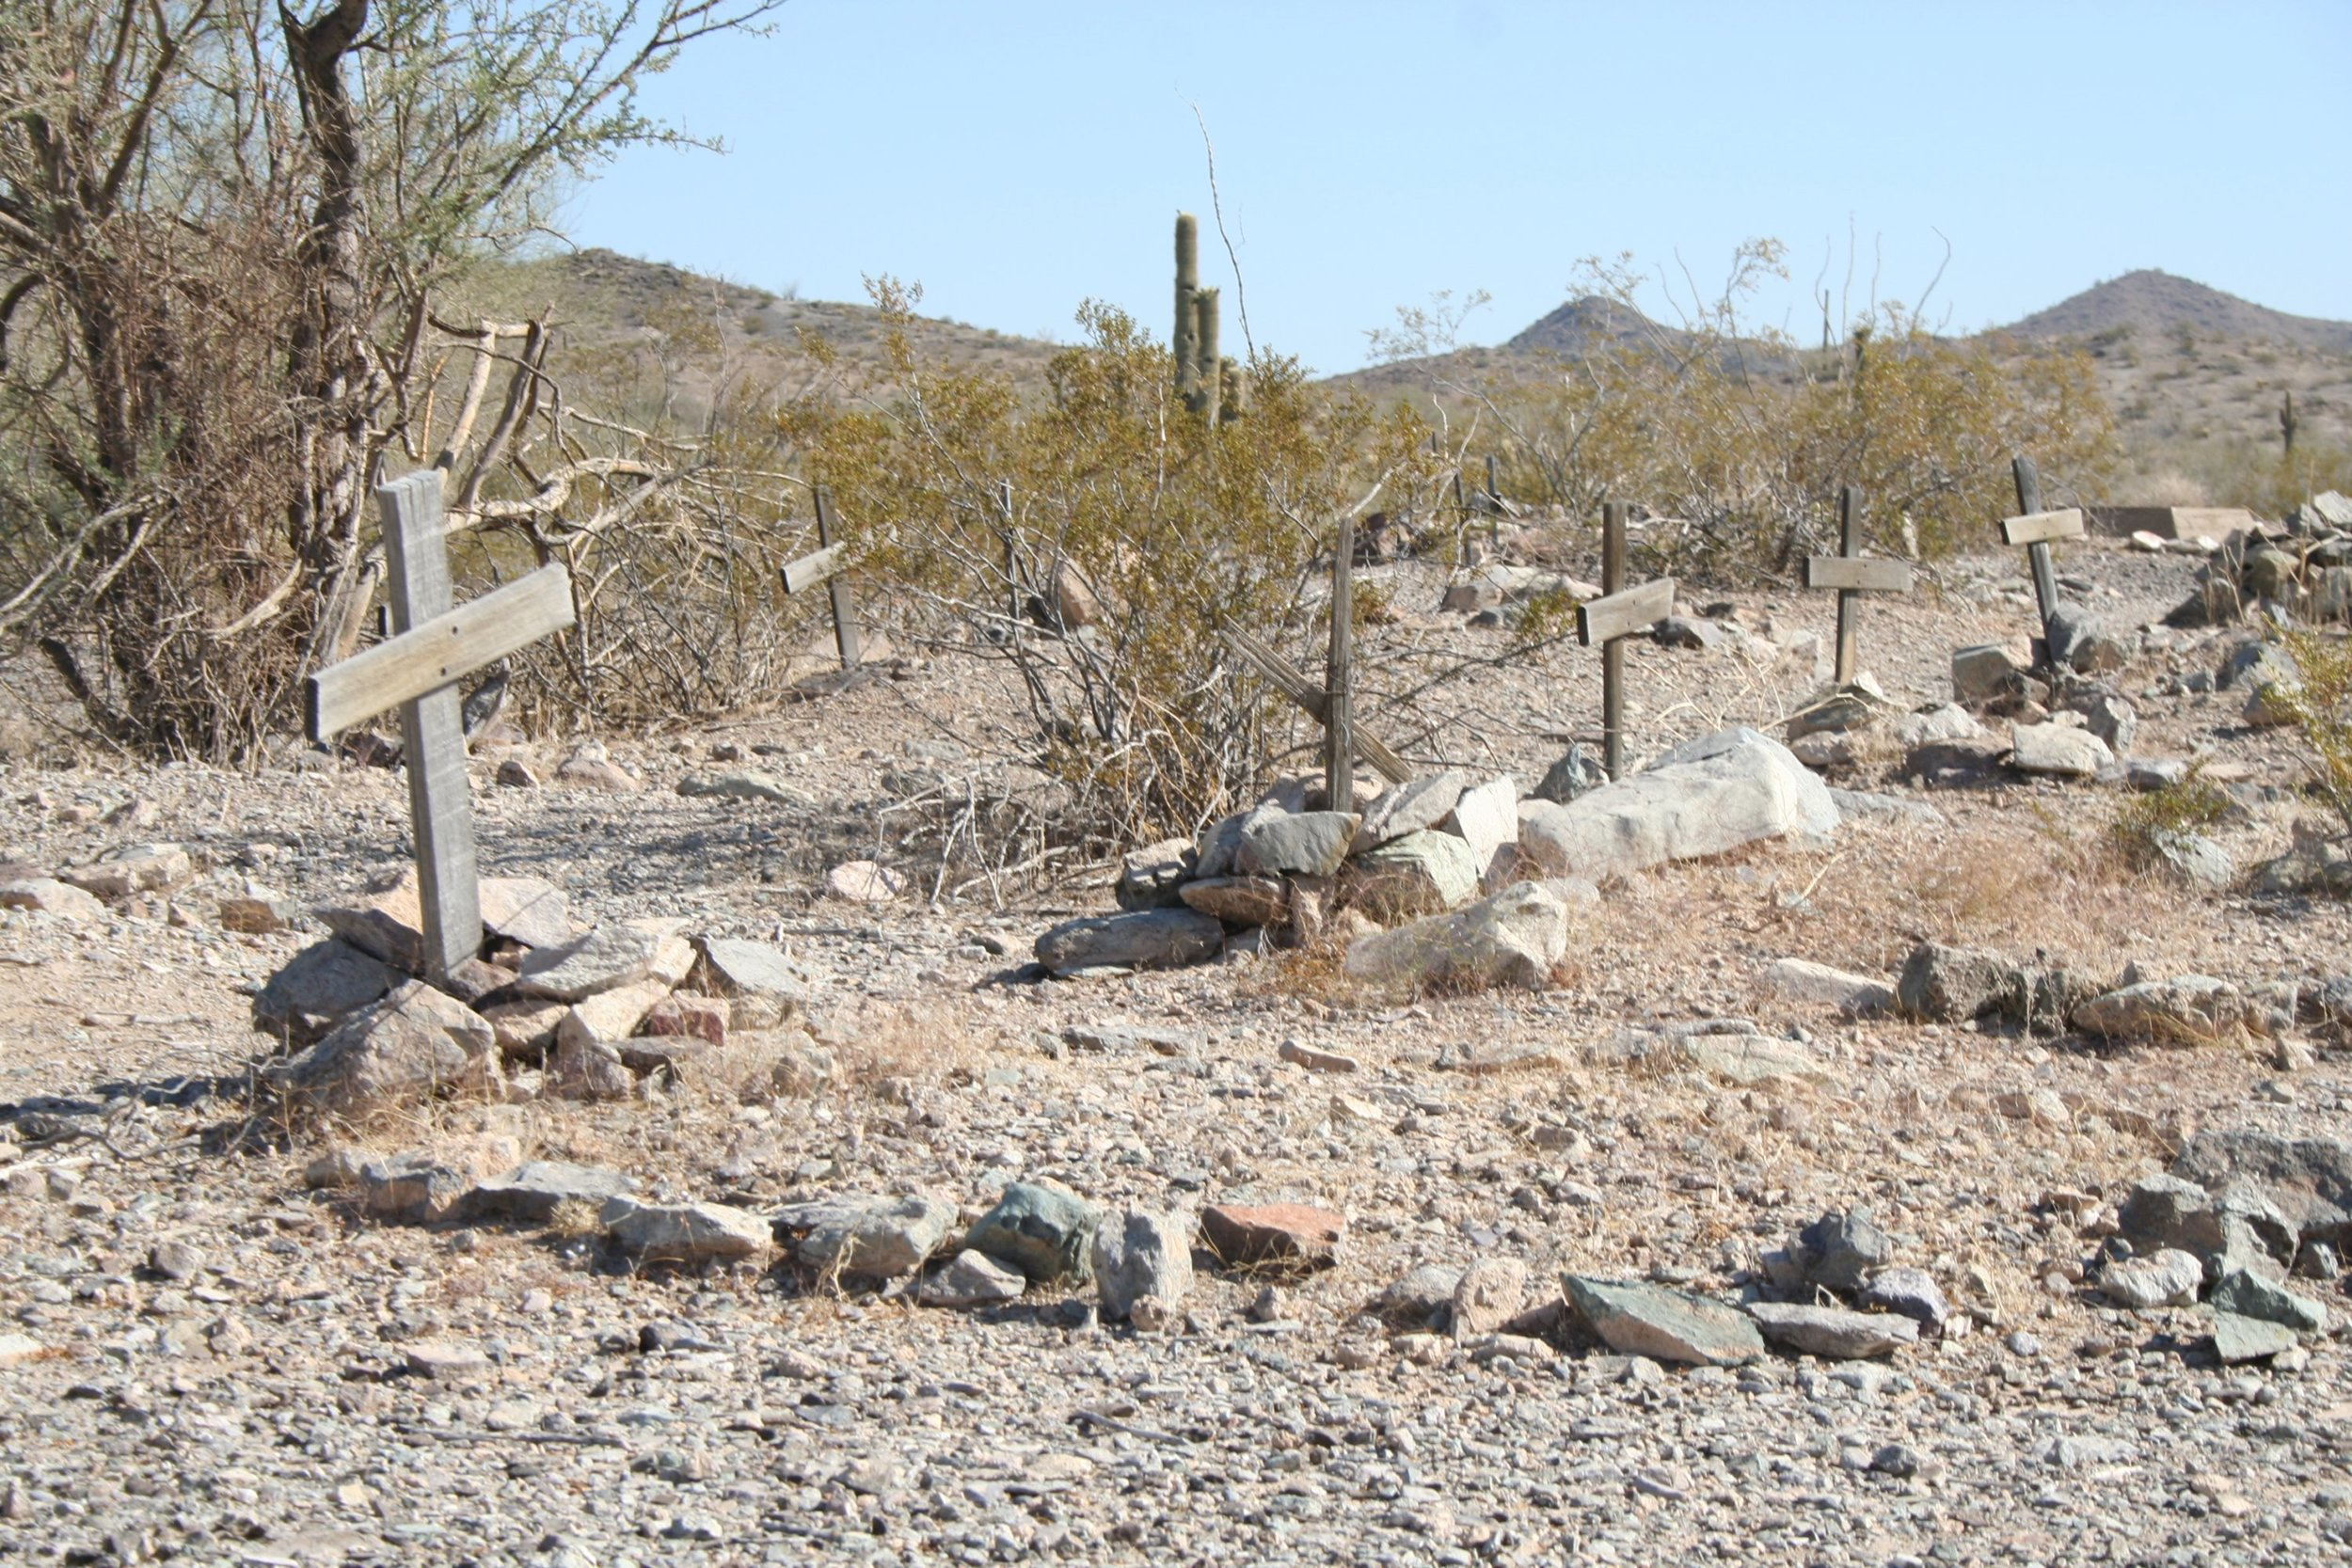 Graves at the Harquahala Cemetery north of the townsite on the main road